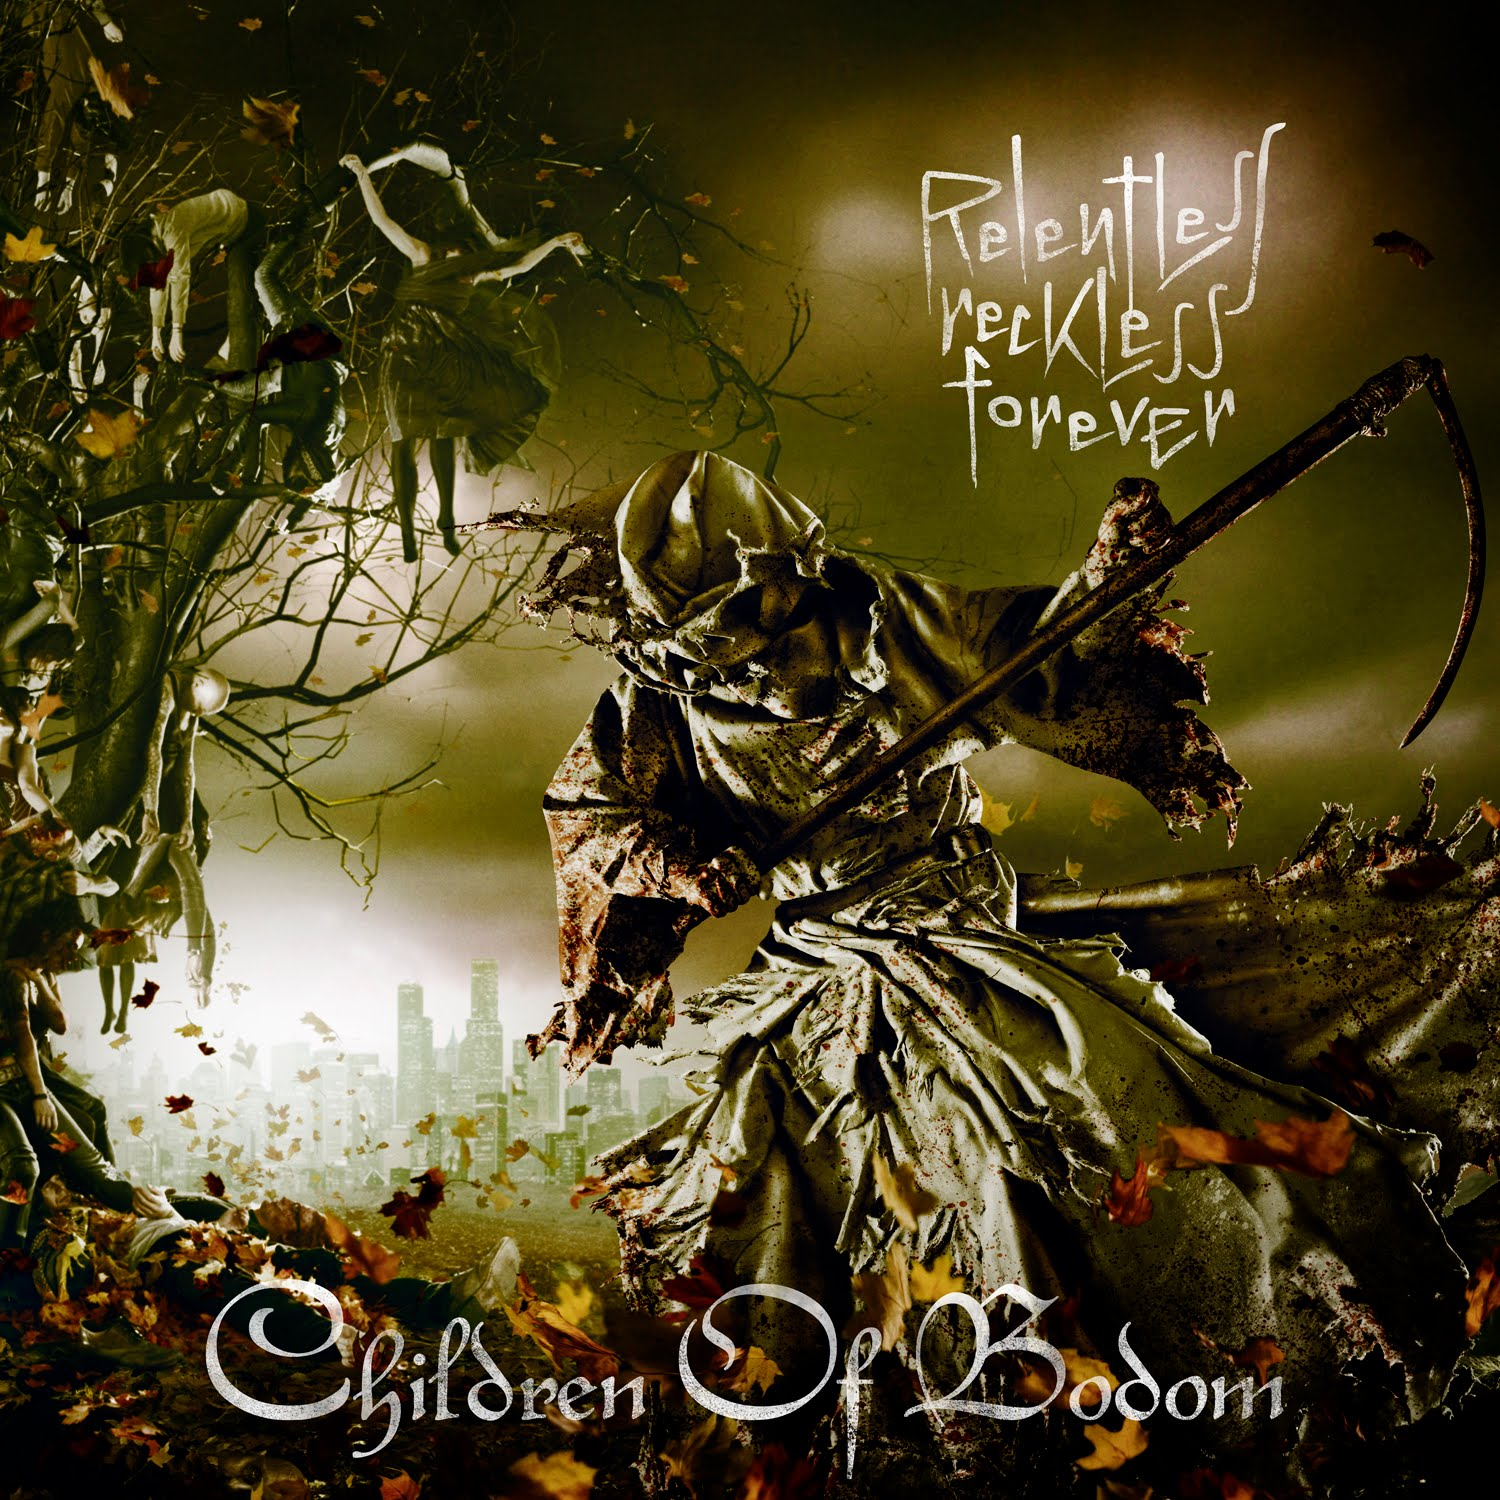 Children-Of-Bodom-Relentless-Reckless-Forever-Front-Cover-by-Eneas